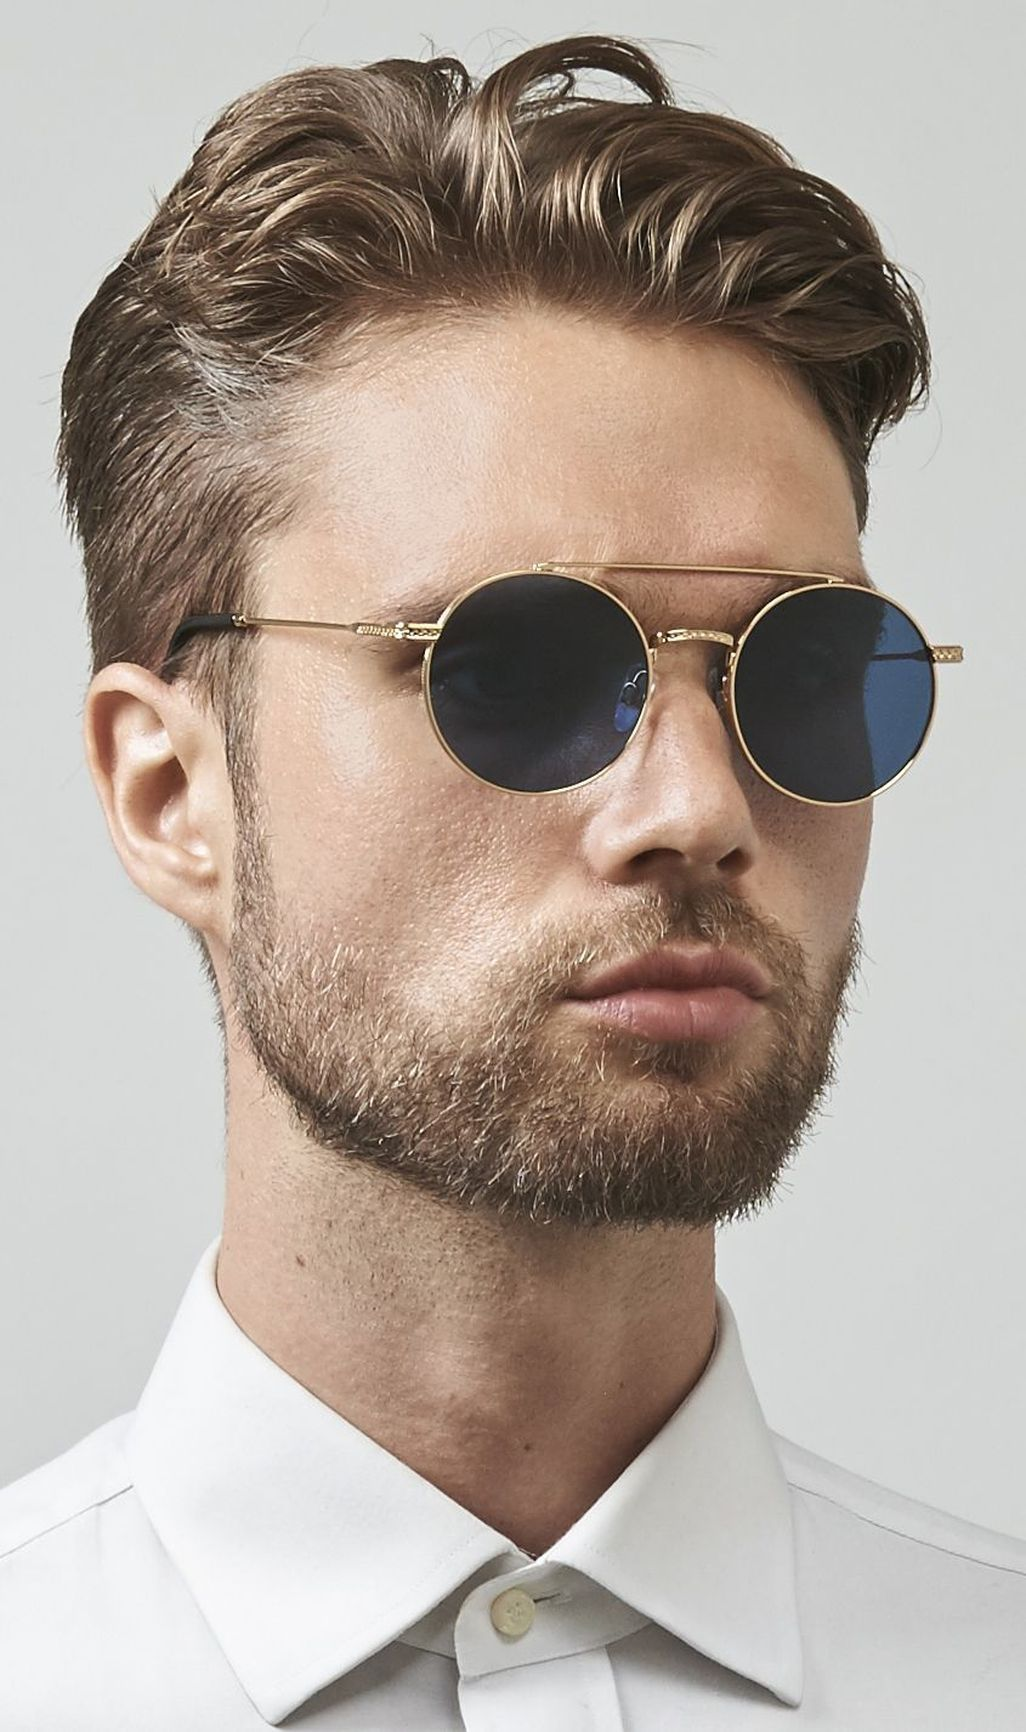 Haircuts for men over 40 nice  stylish mens sunglasses styles ideas more at